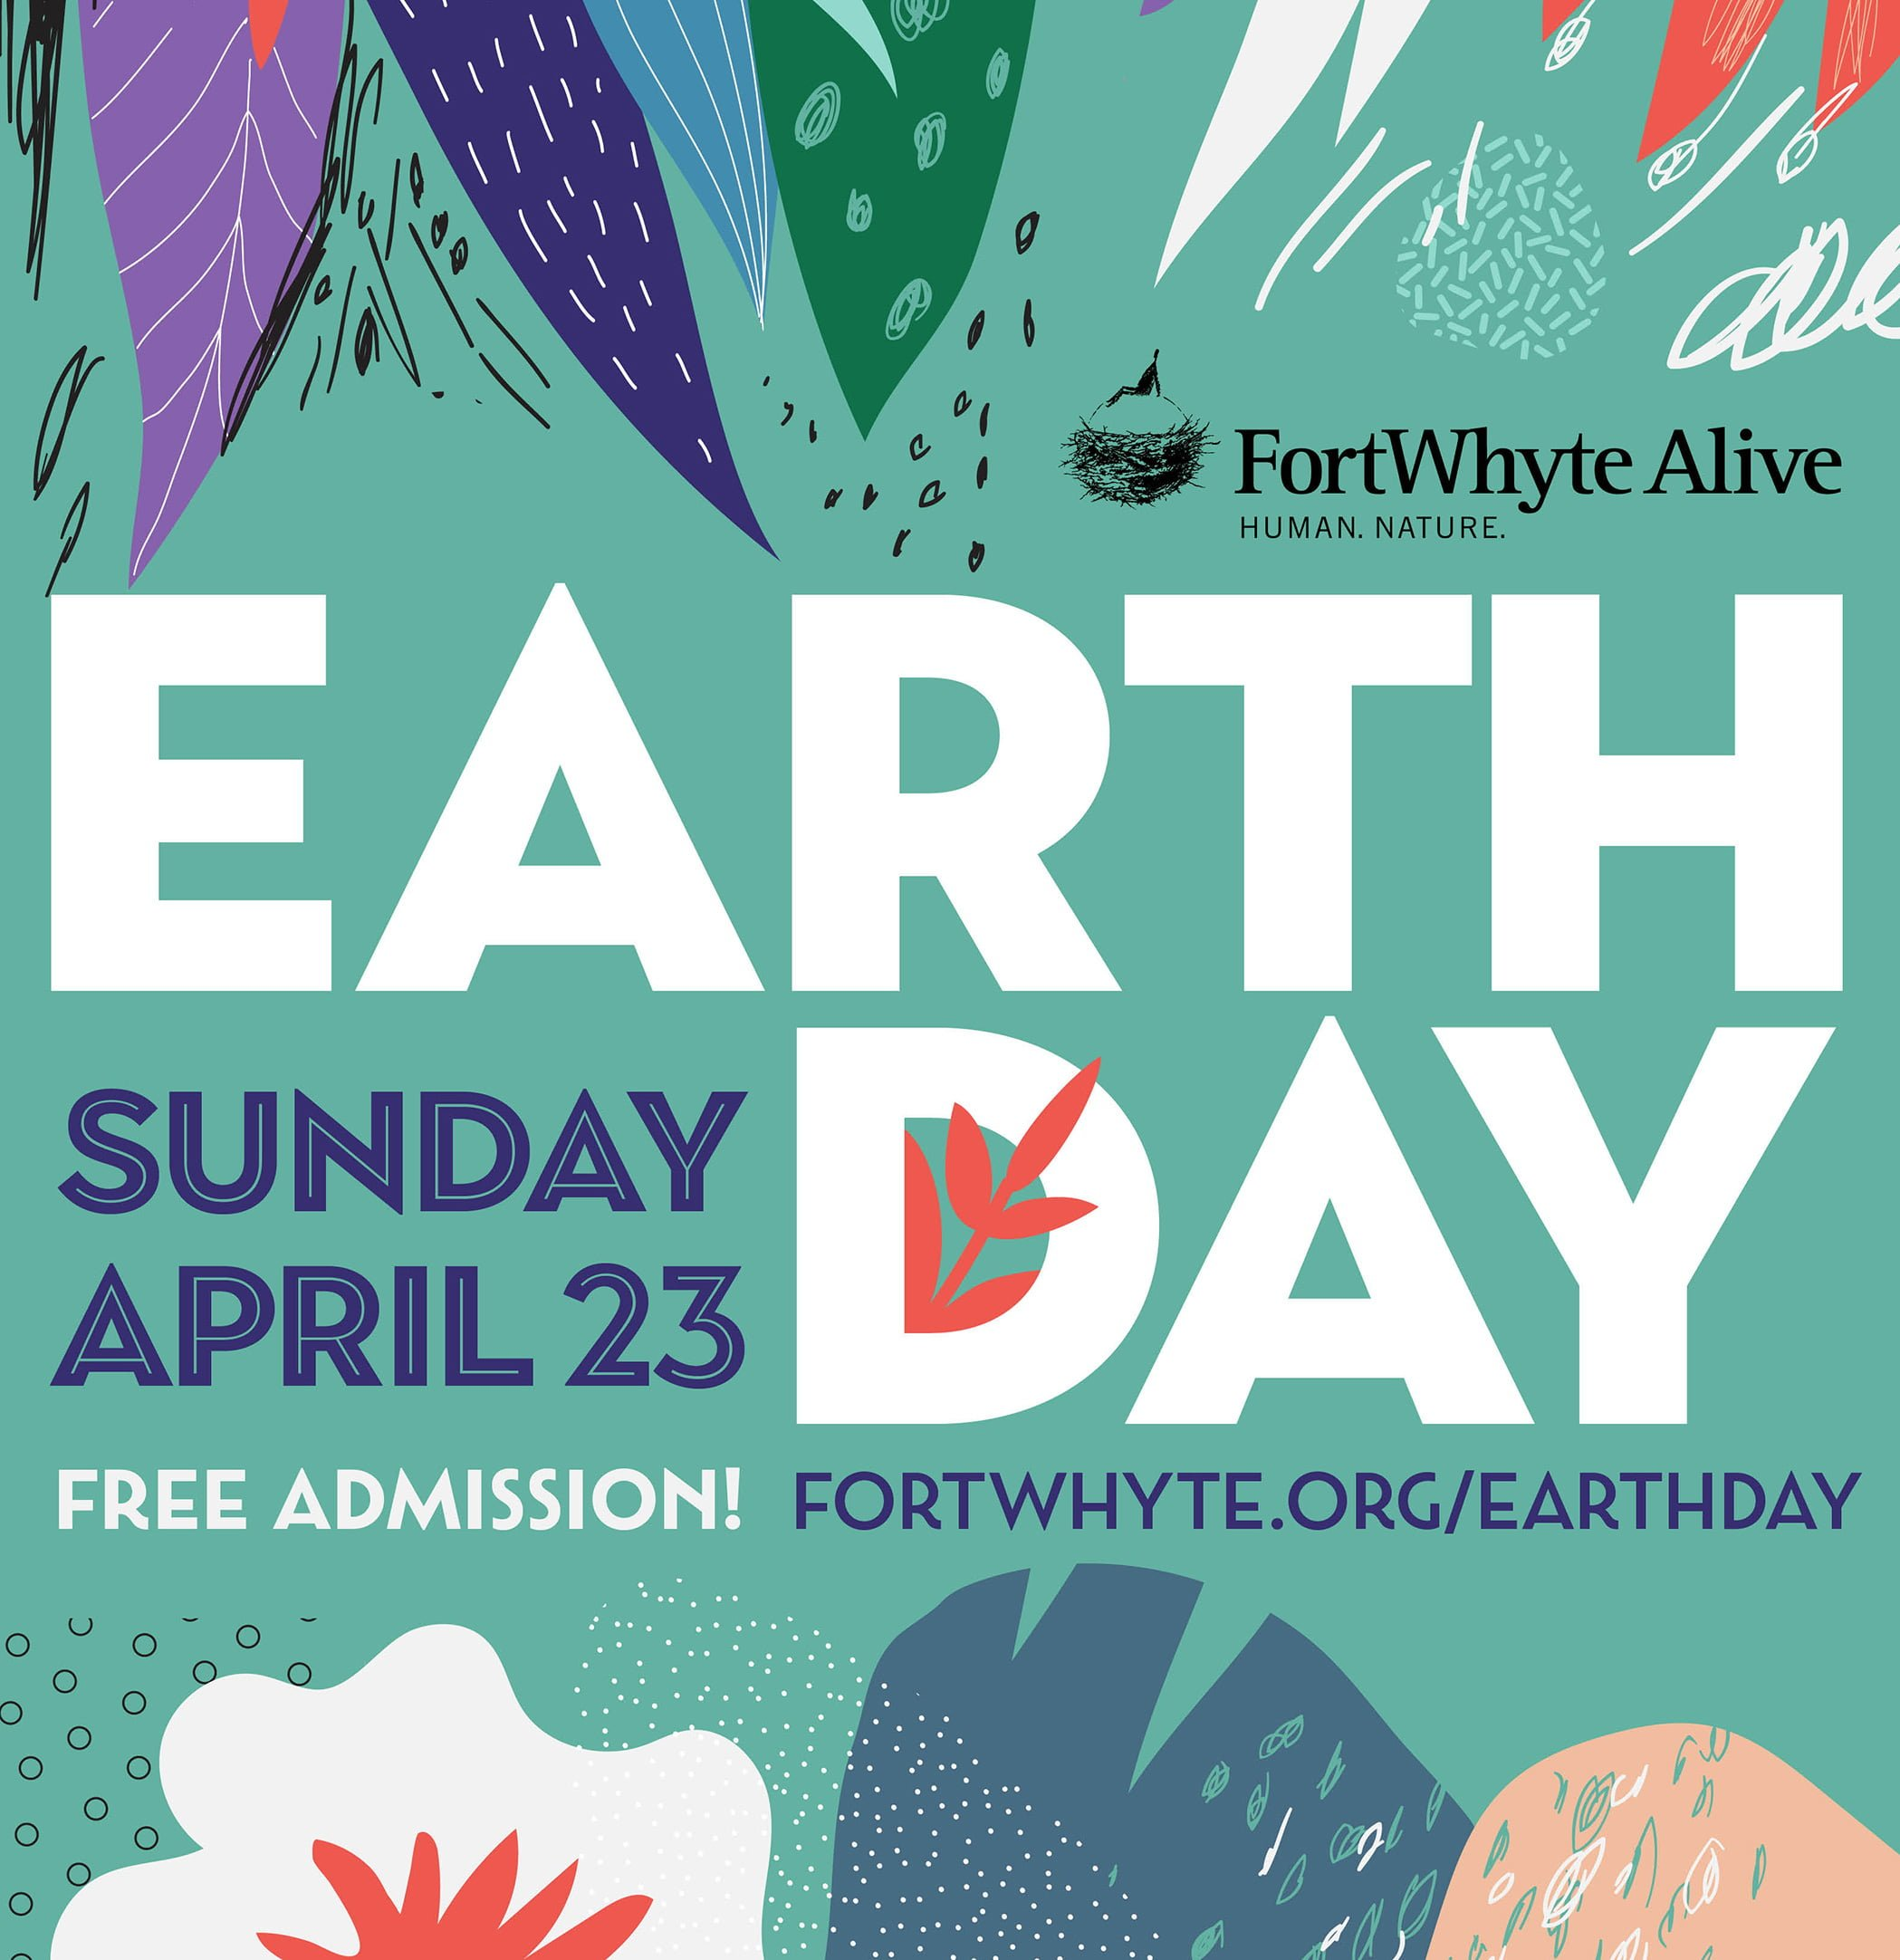 earth day fortwhyte alive